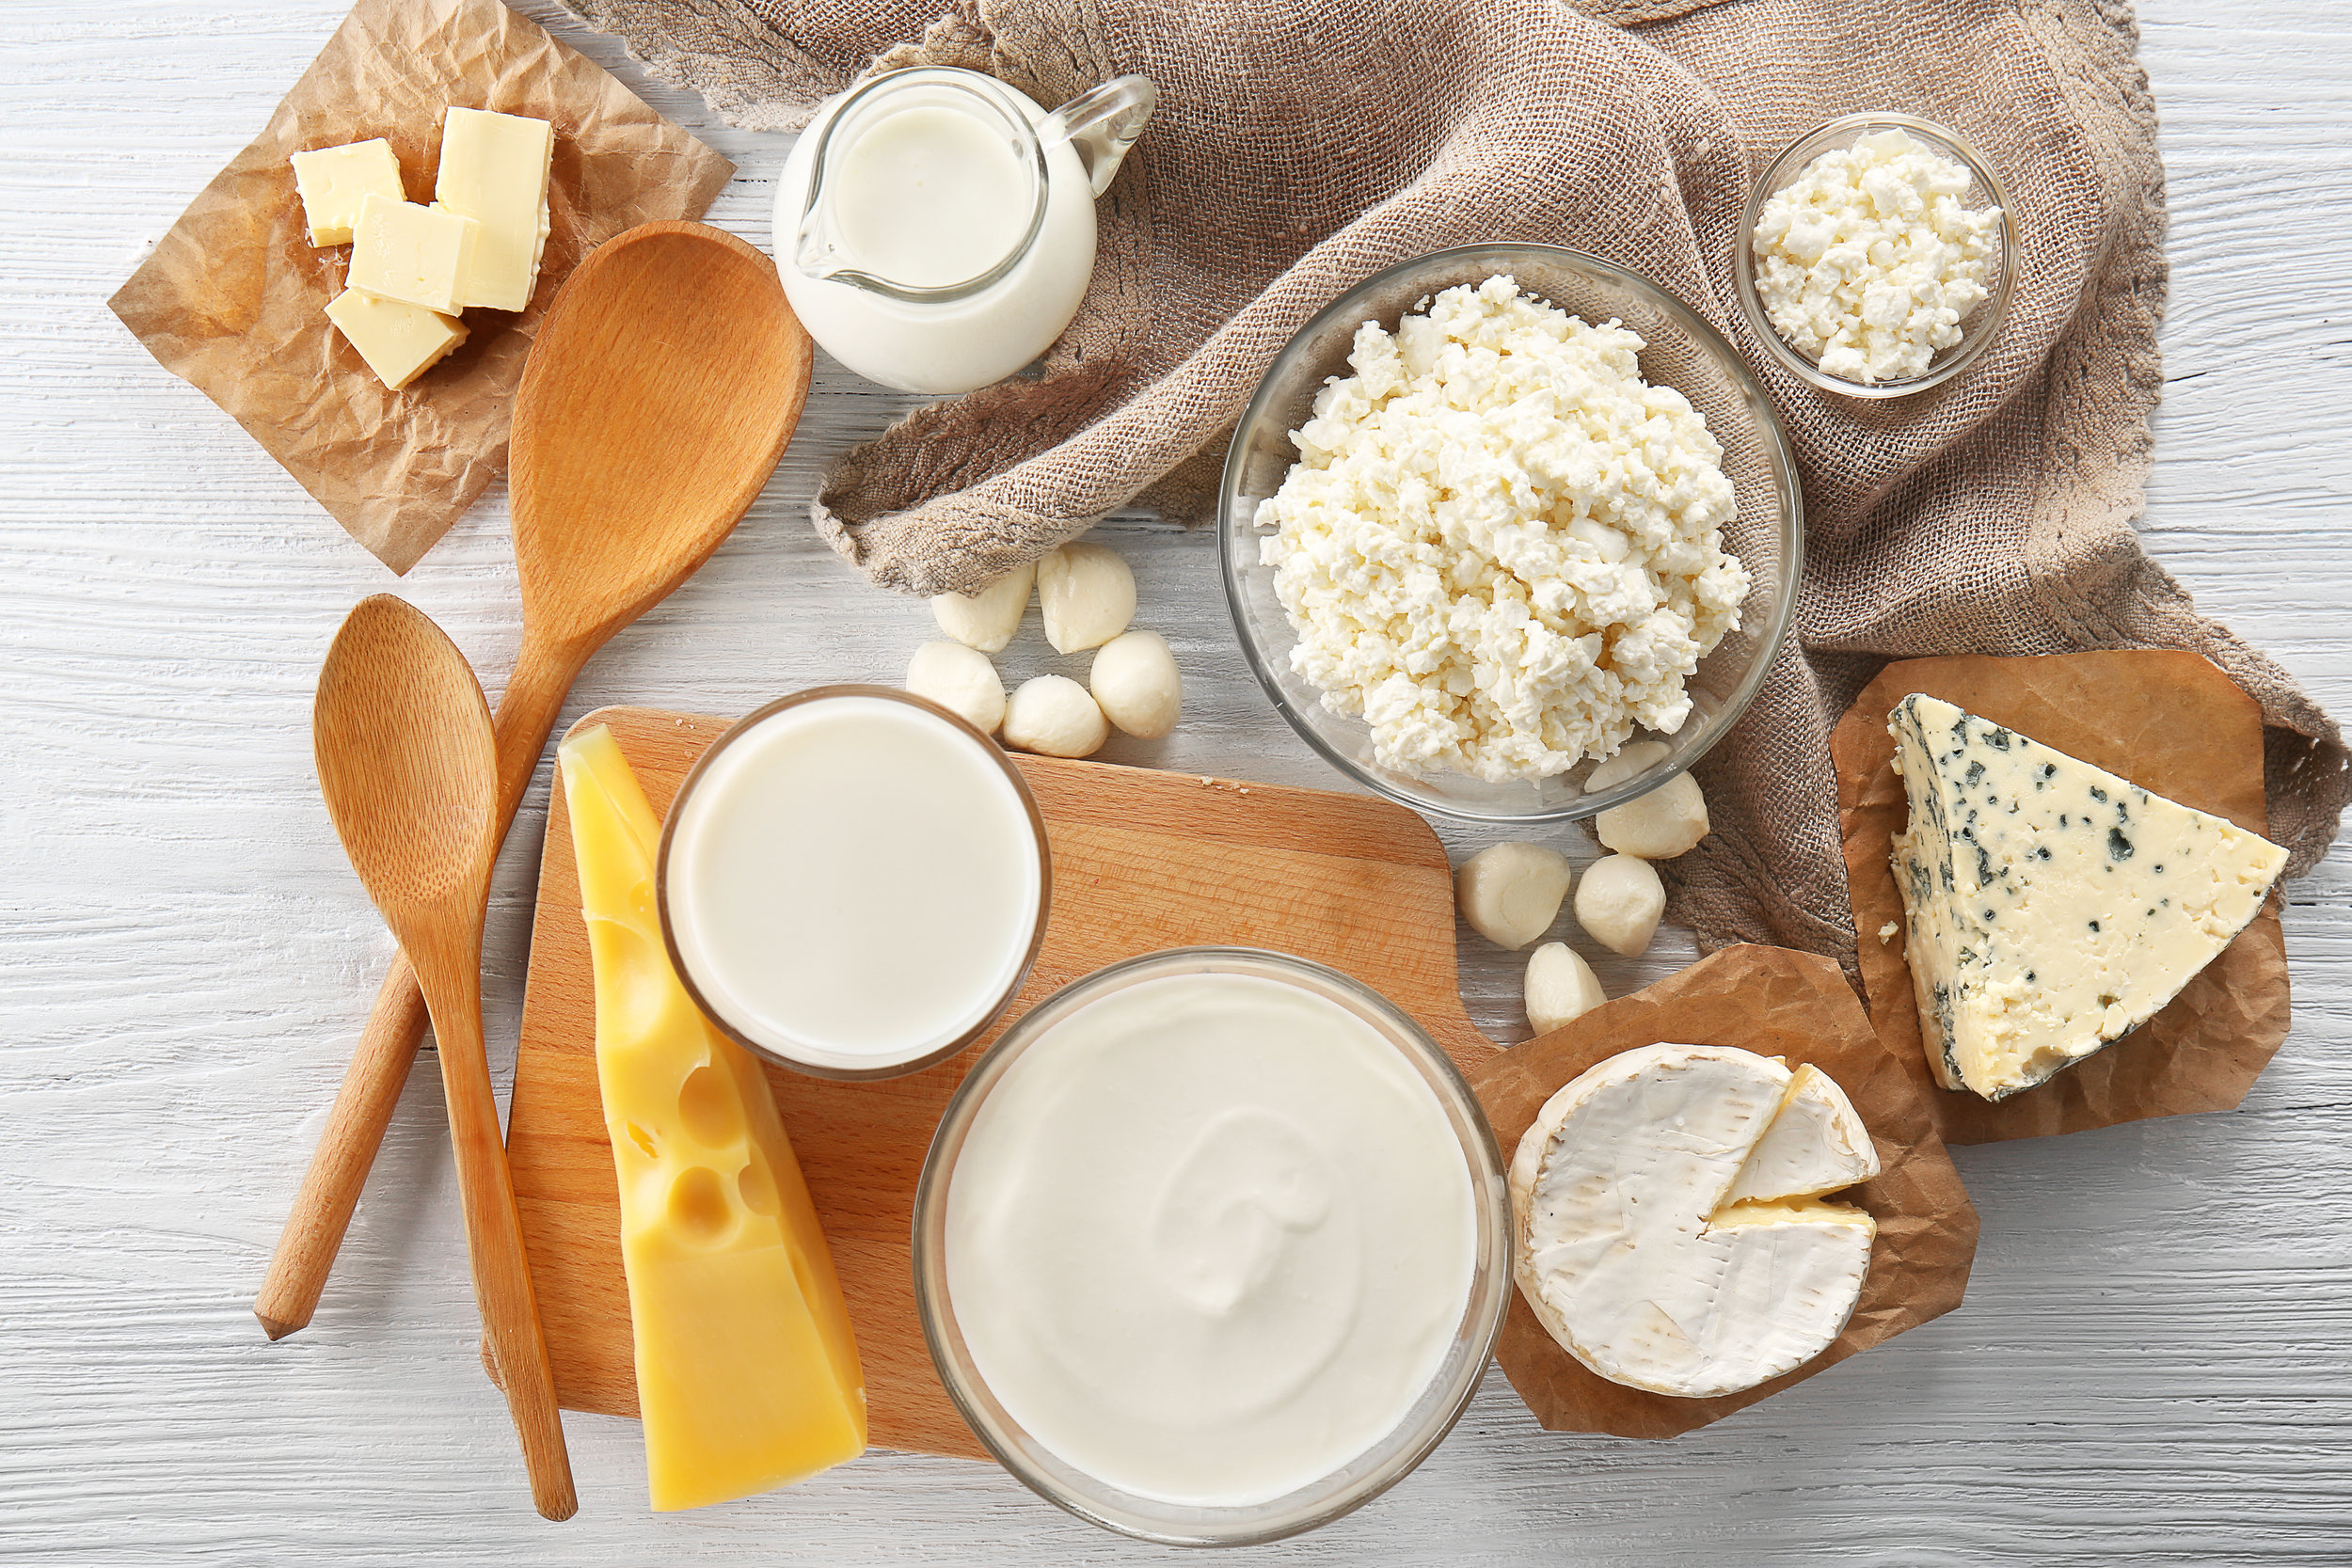 Do you experience sensitivities, allergies, bloating, skin problems, or other reactions from dairy consumption? -